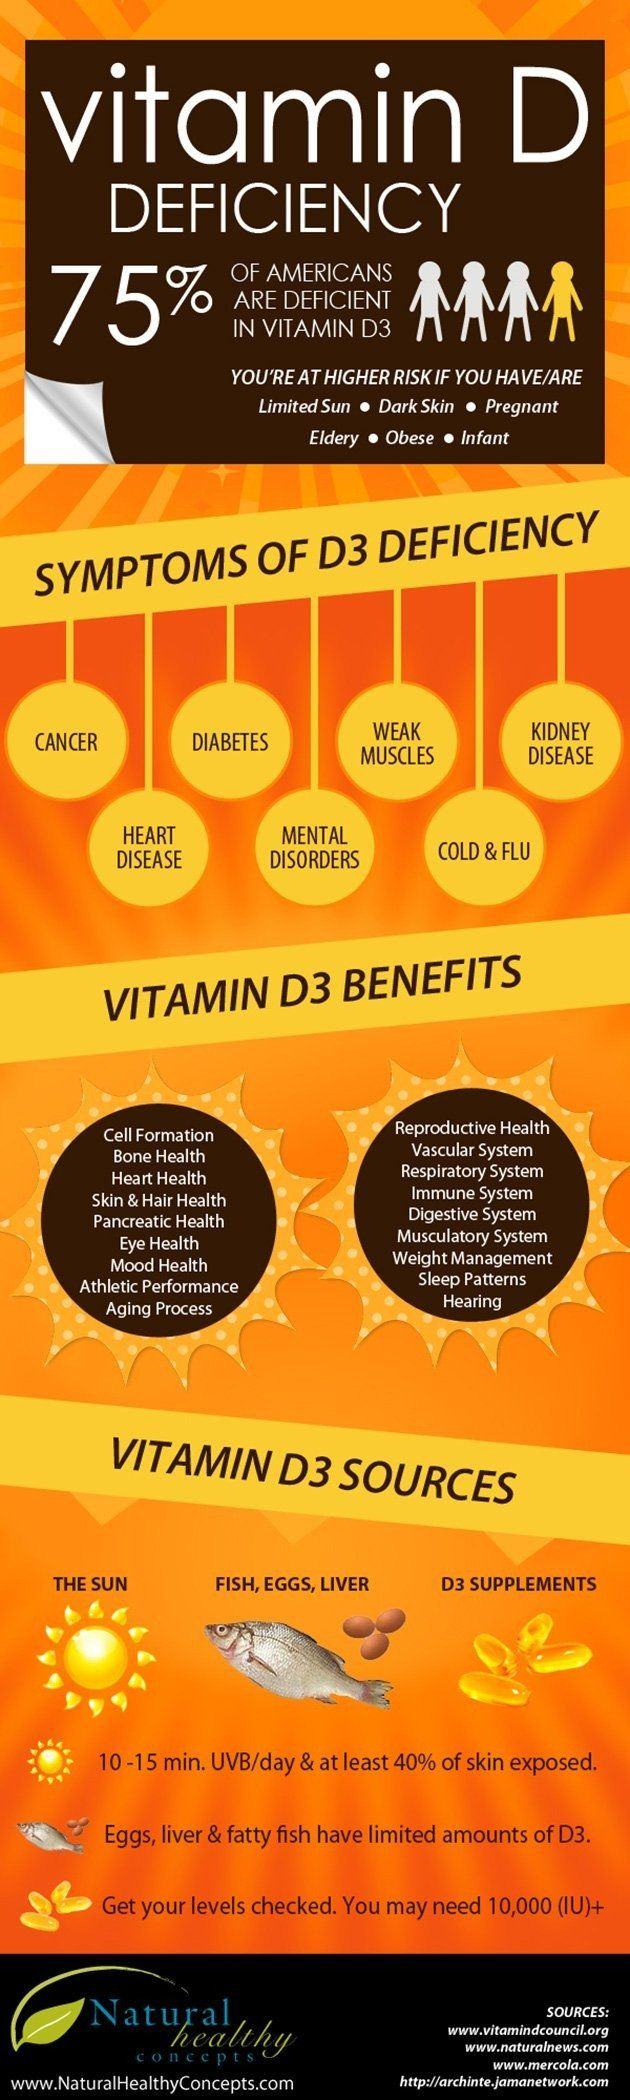 It's been surprising for me to see that a majority of users who come to SuppFinder.com from google search are looking for information on Vitamin D and Vitamin D deficiency...